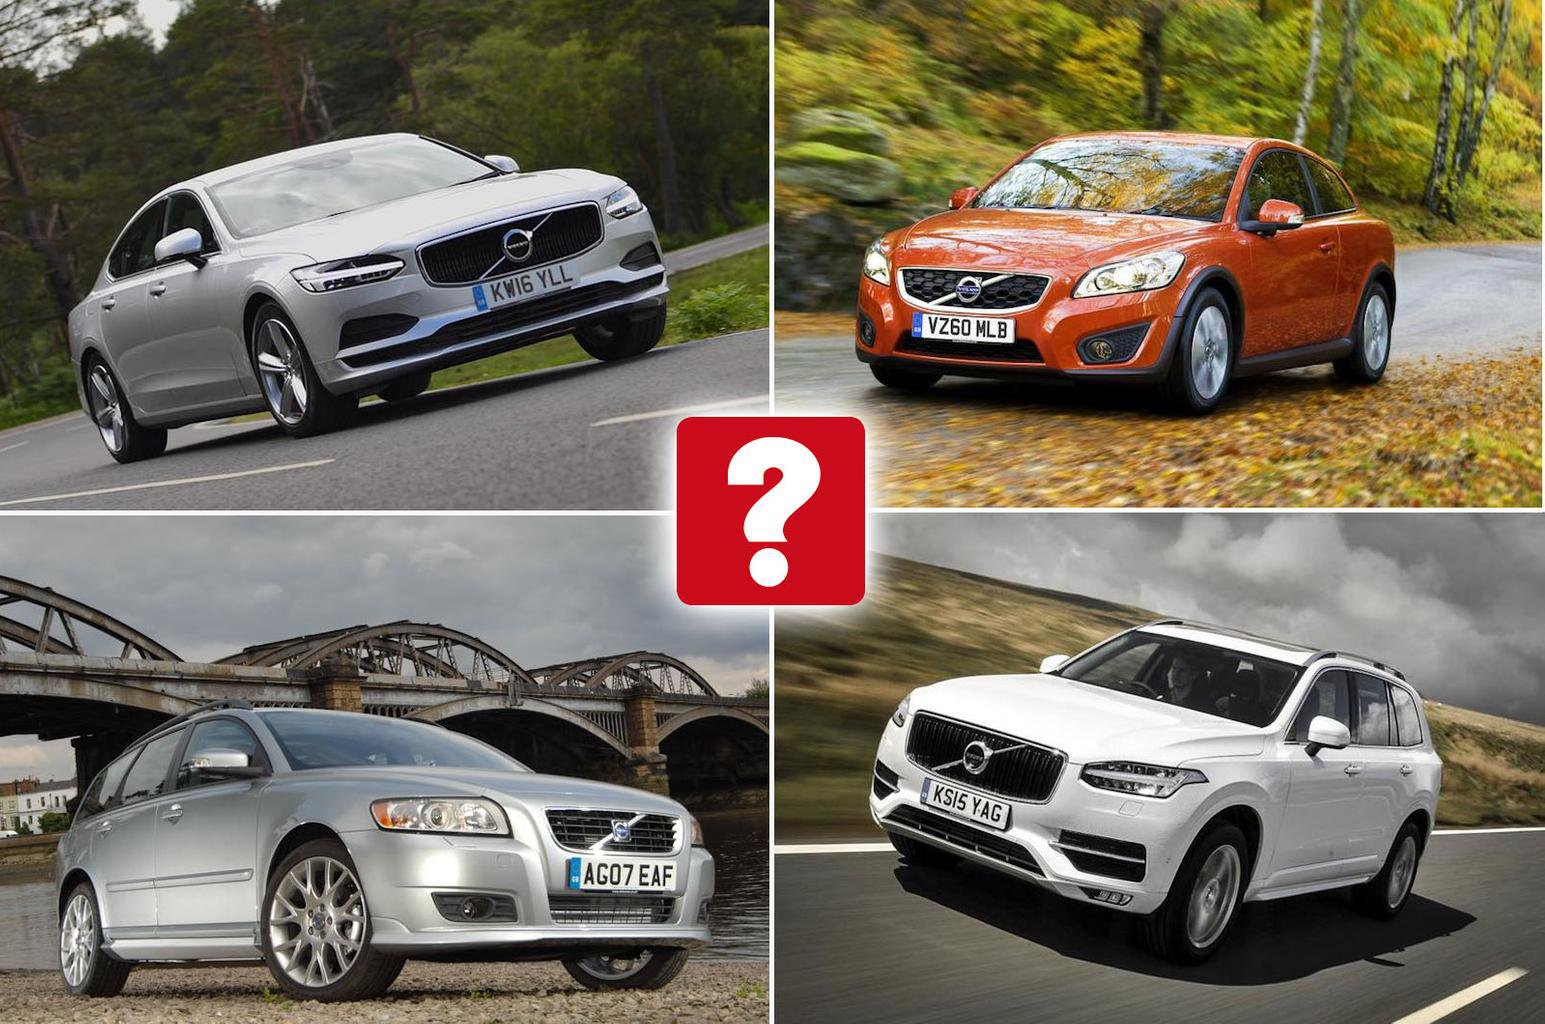 Best used Volvos collage